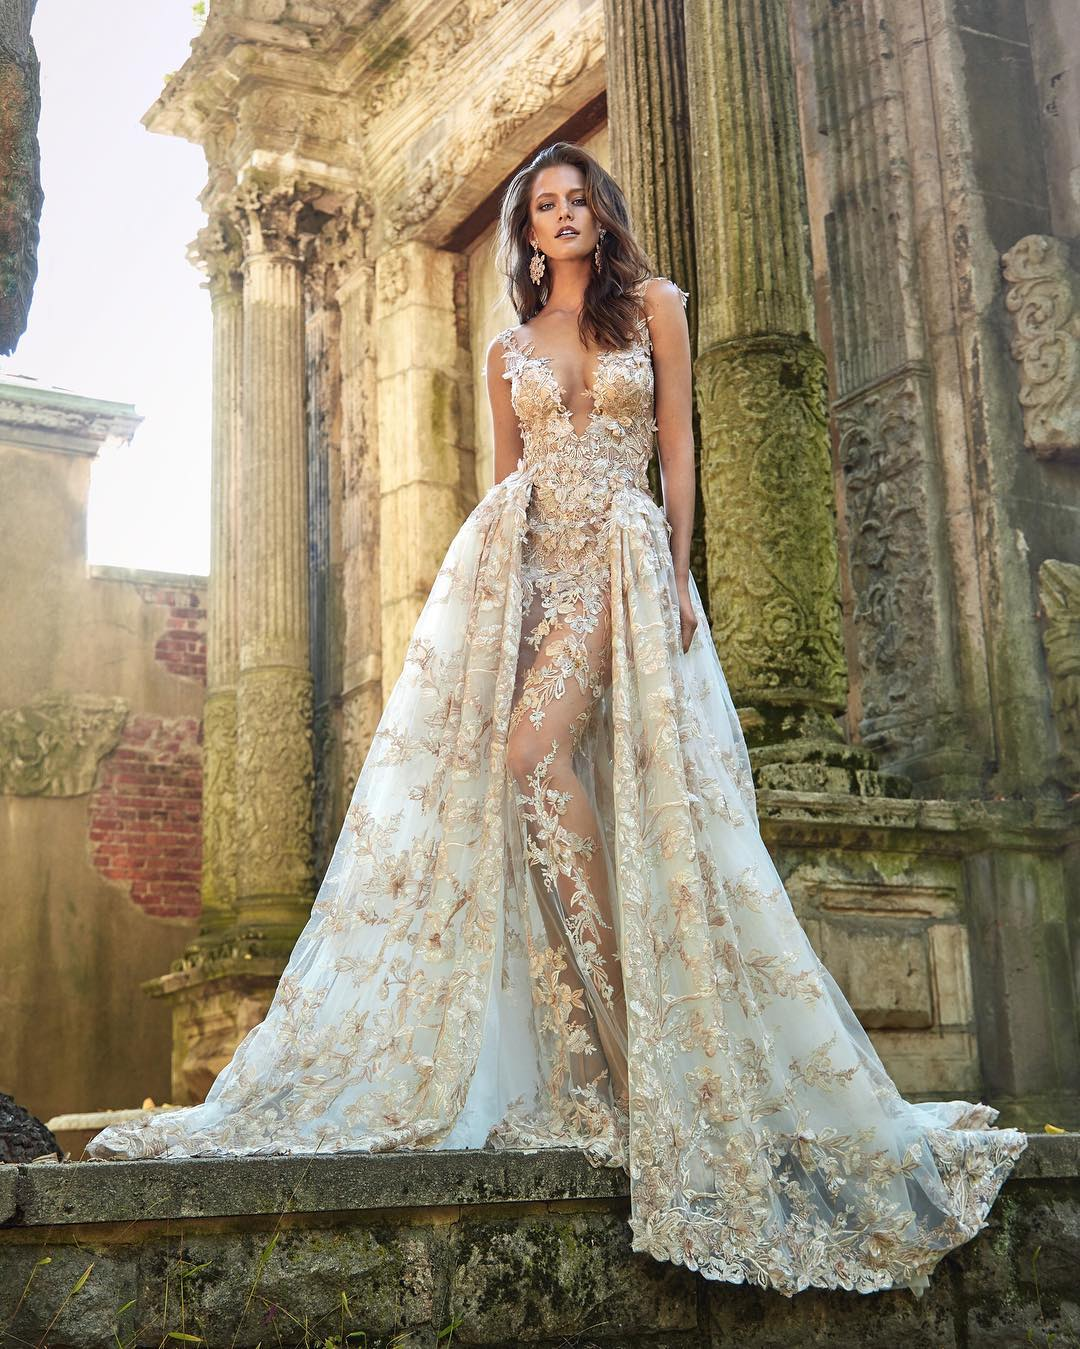 white and gold glamor wedding dress